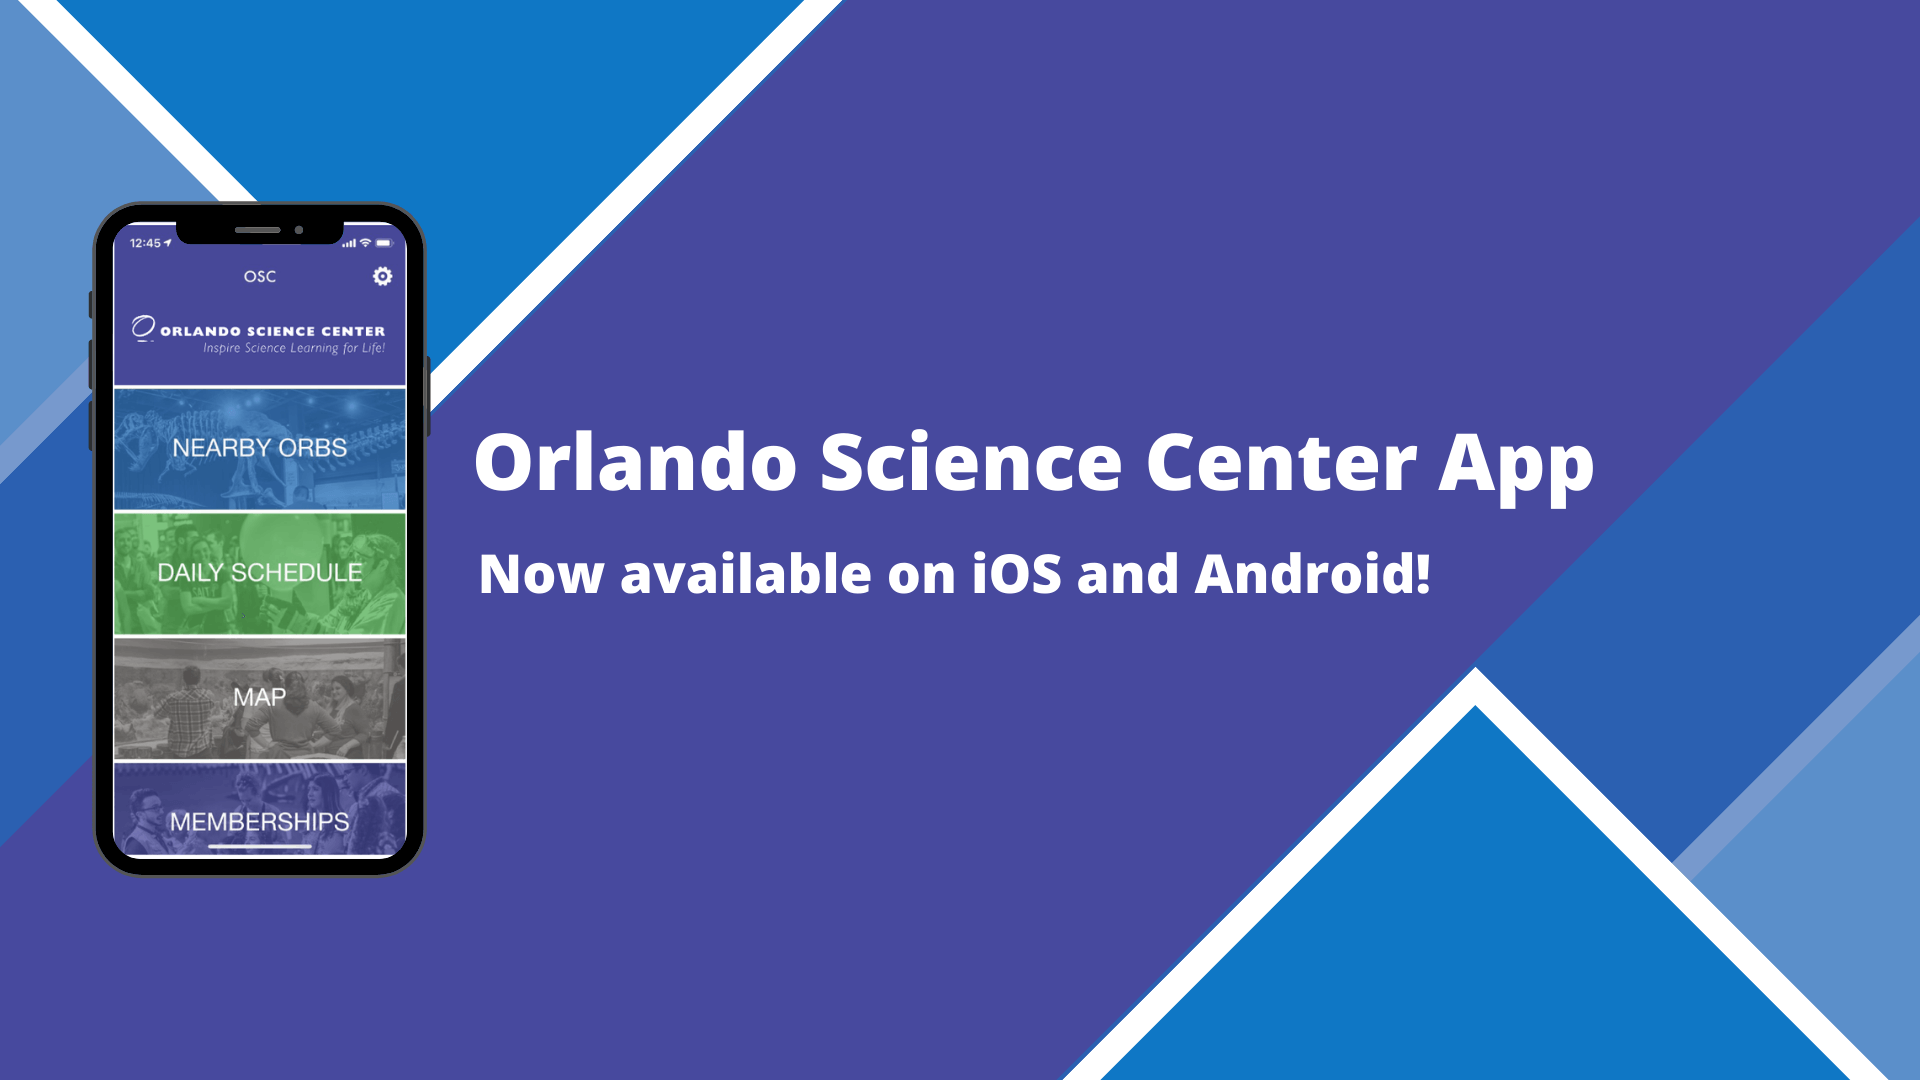 Orlando Science Center App Now available on iOS and Android!